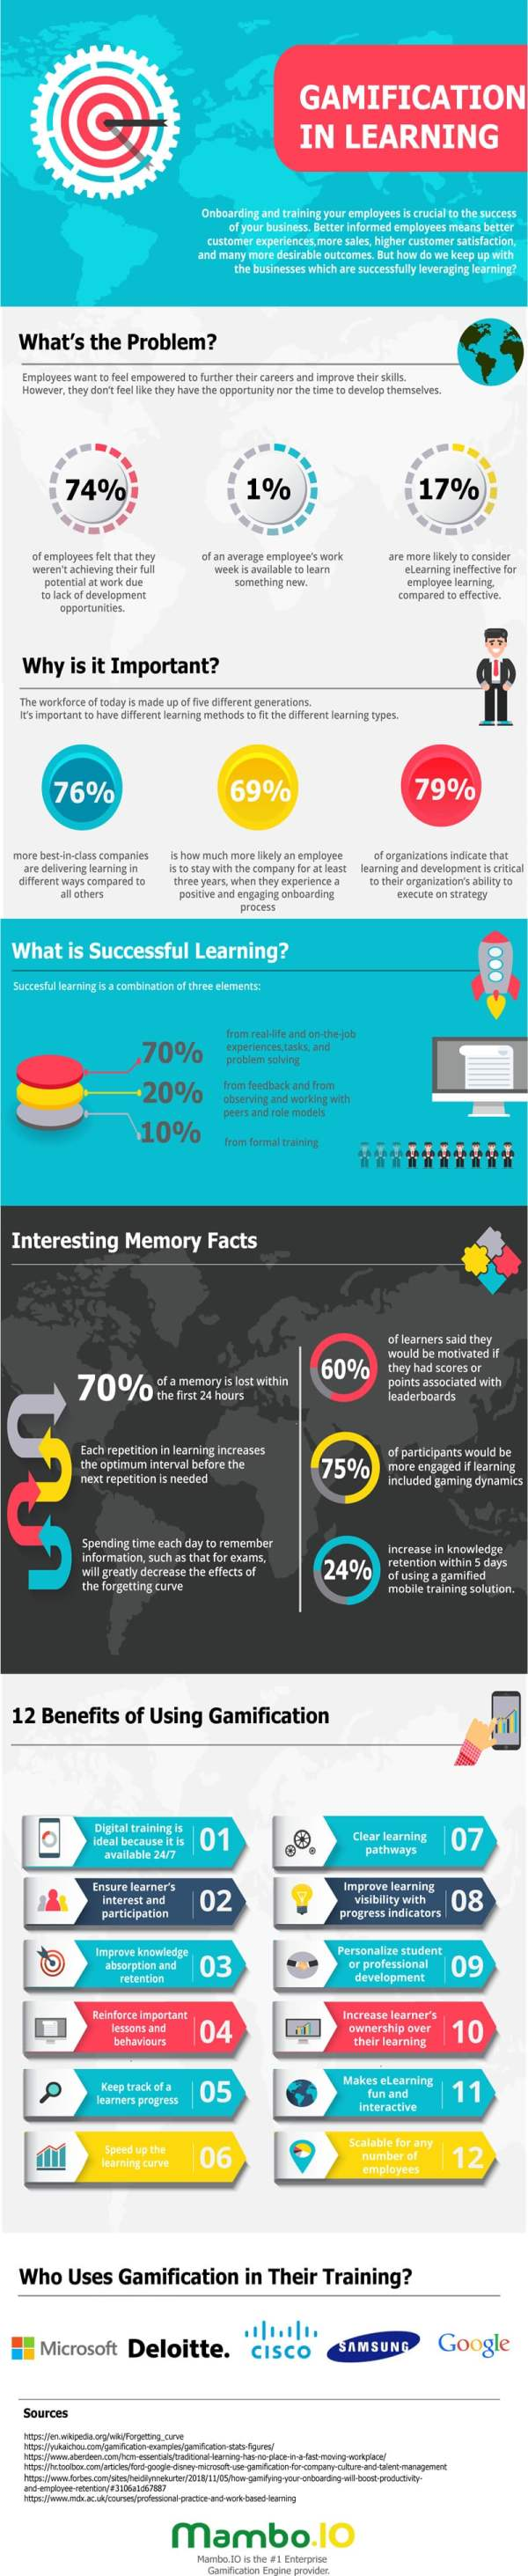 learning_gamification_infographic